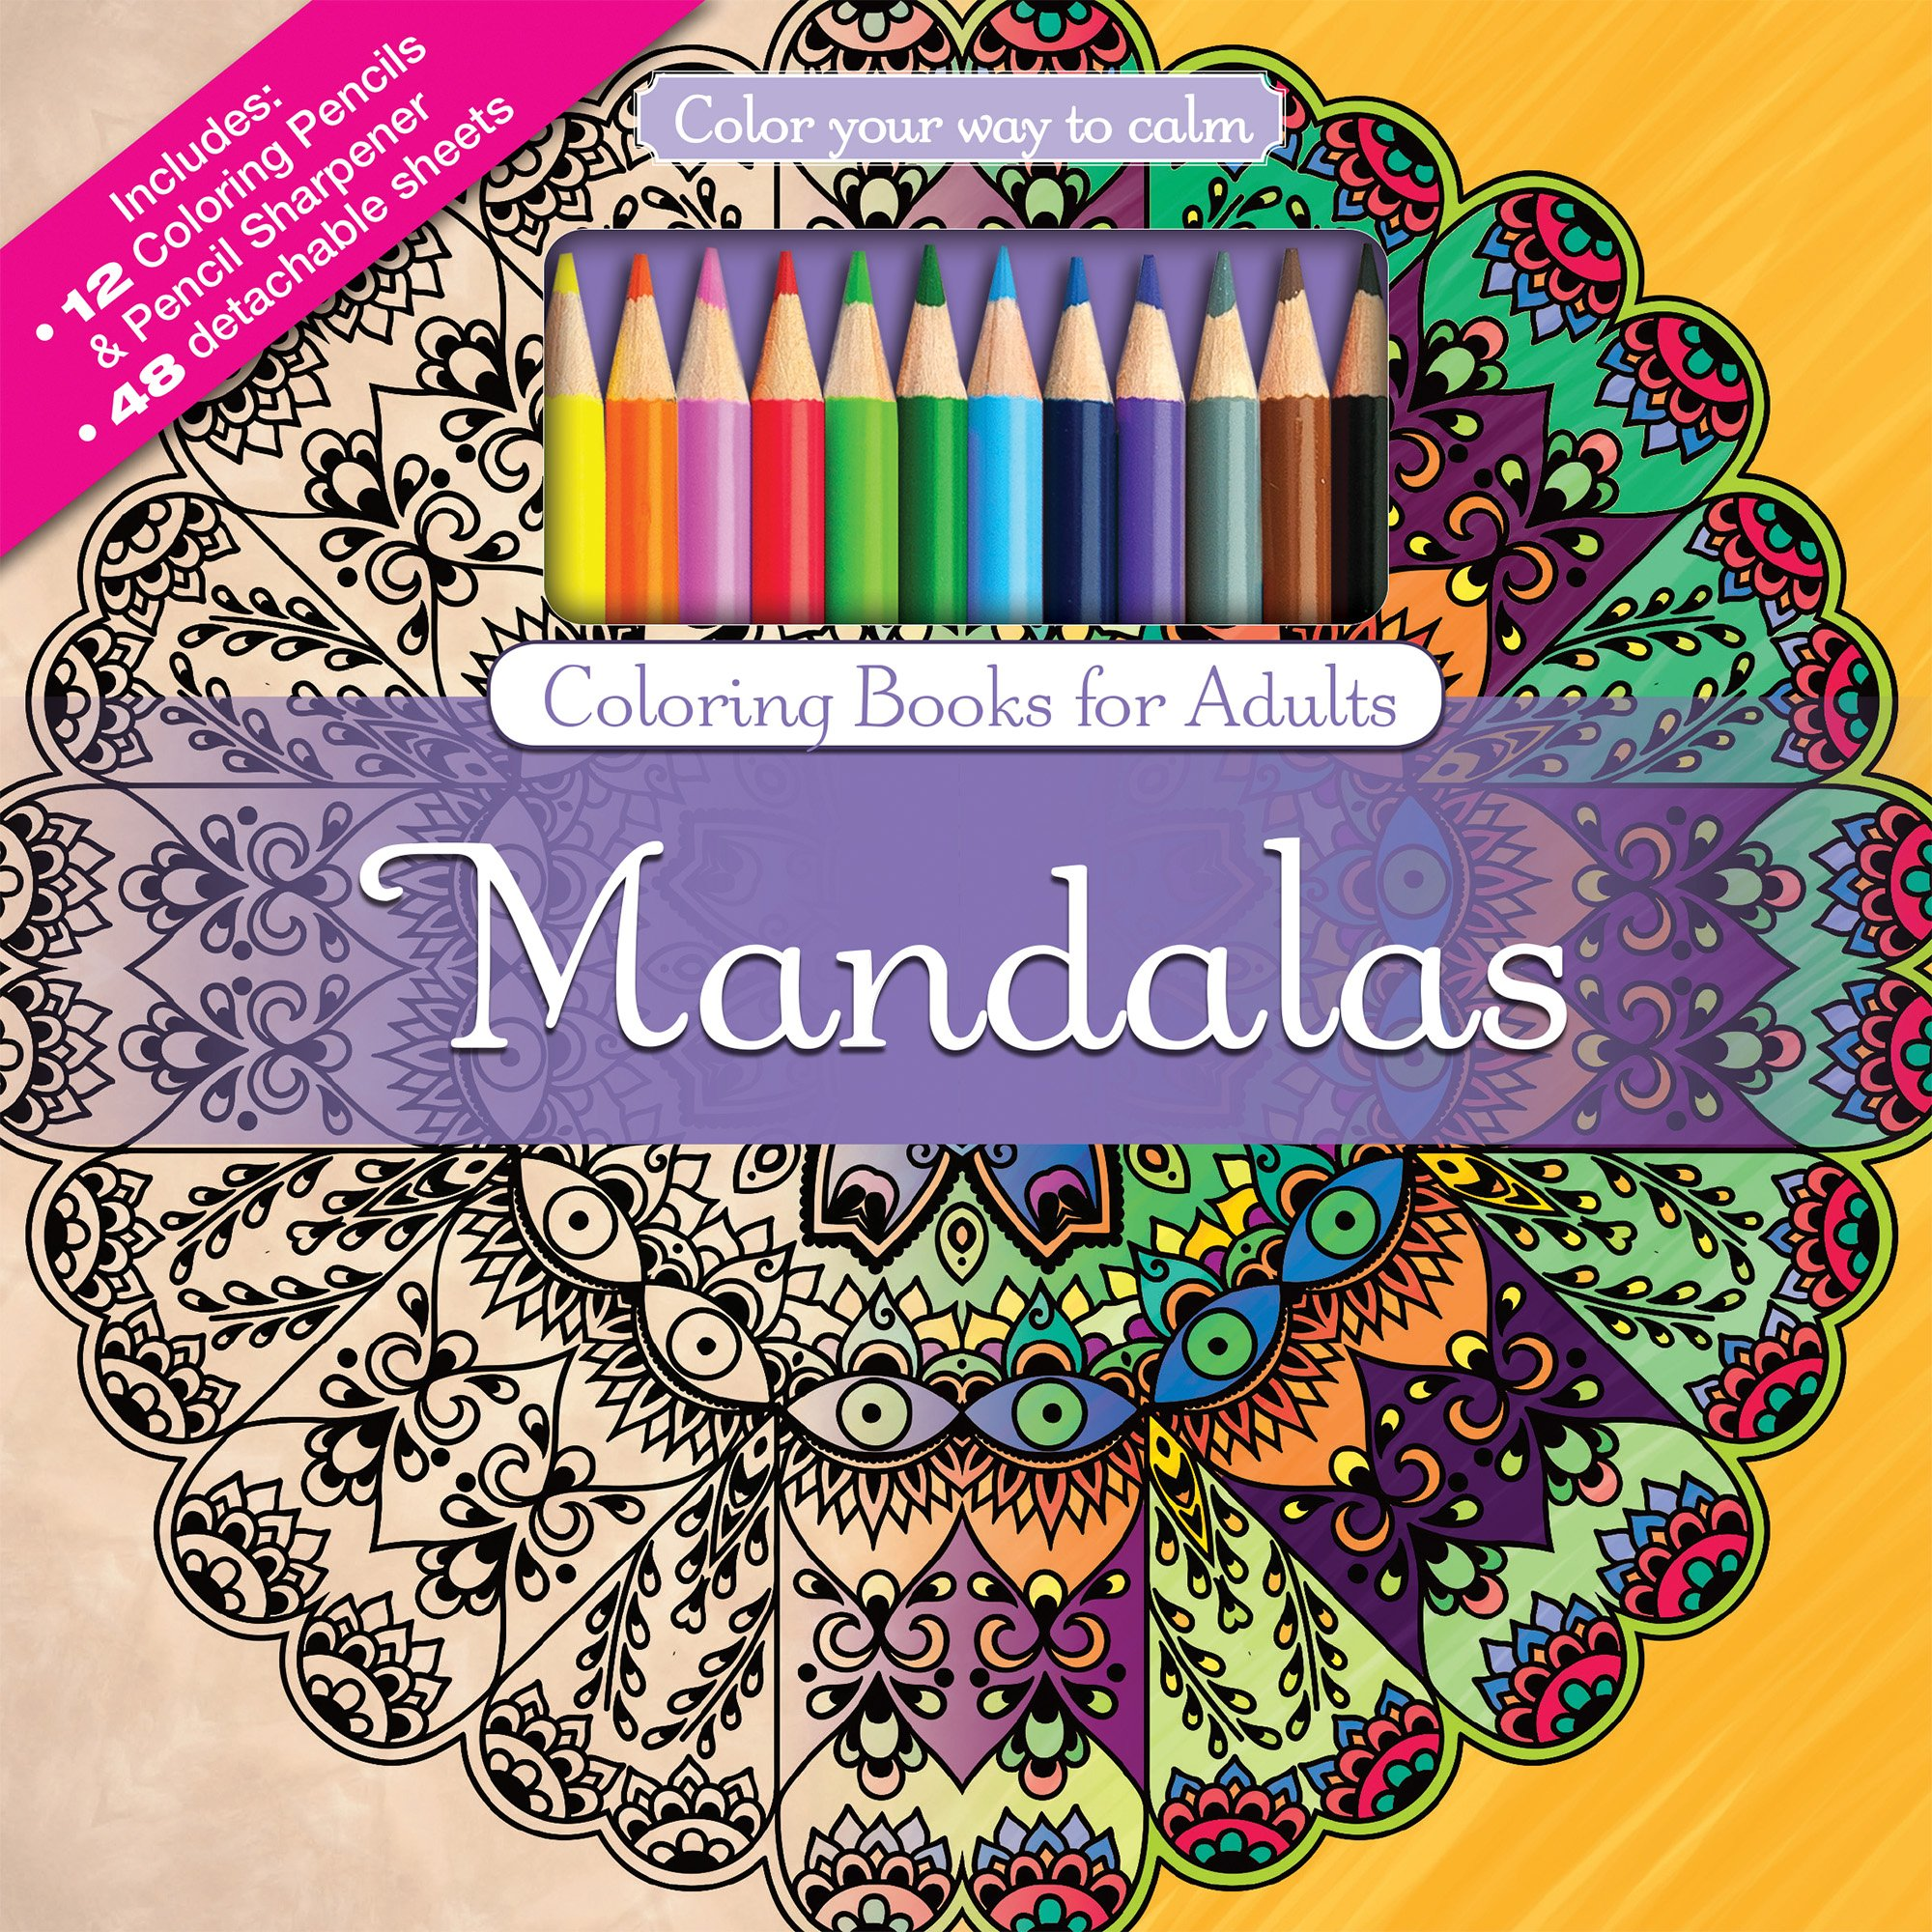 Amazon.com: Mandalas Adult Coloring Book Set With 24 Colored ...